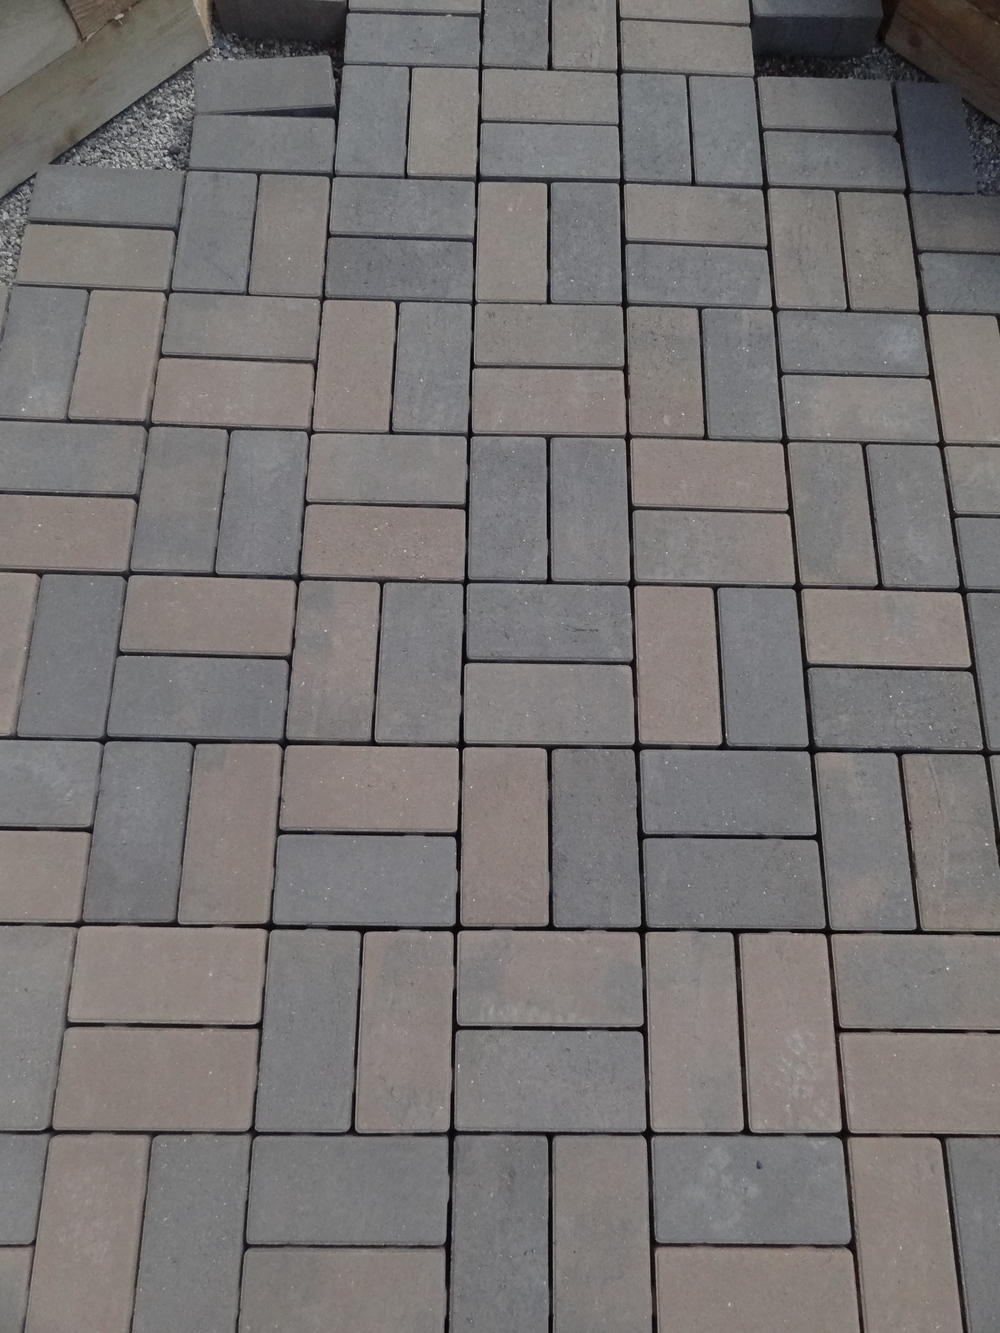 Proposed permeable pavers